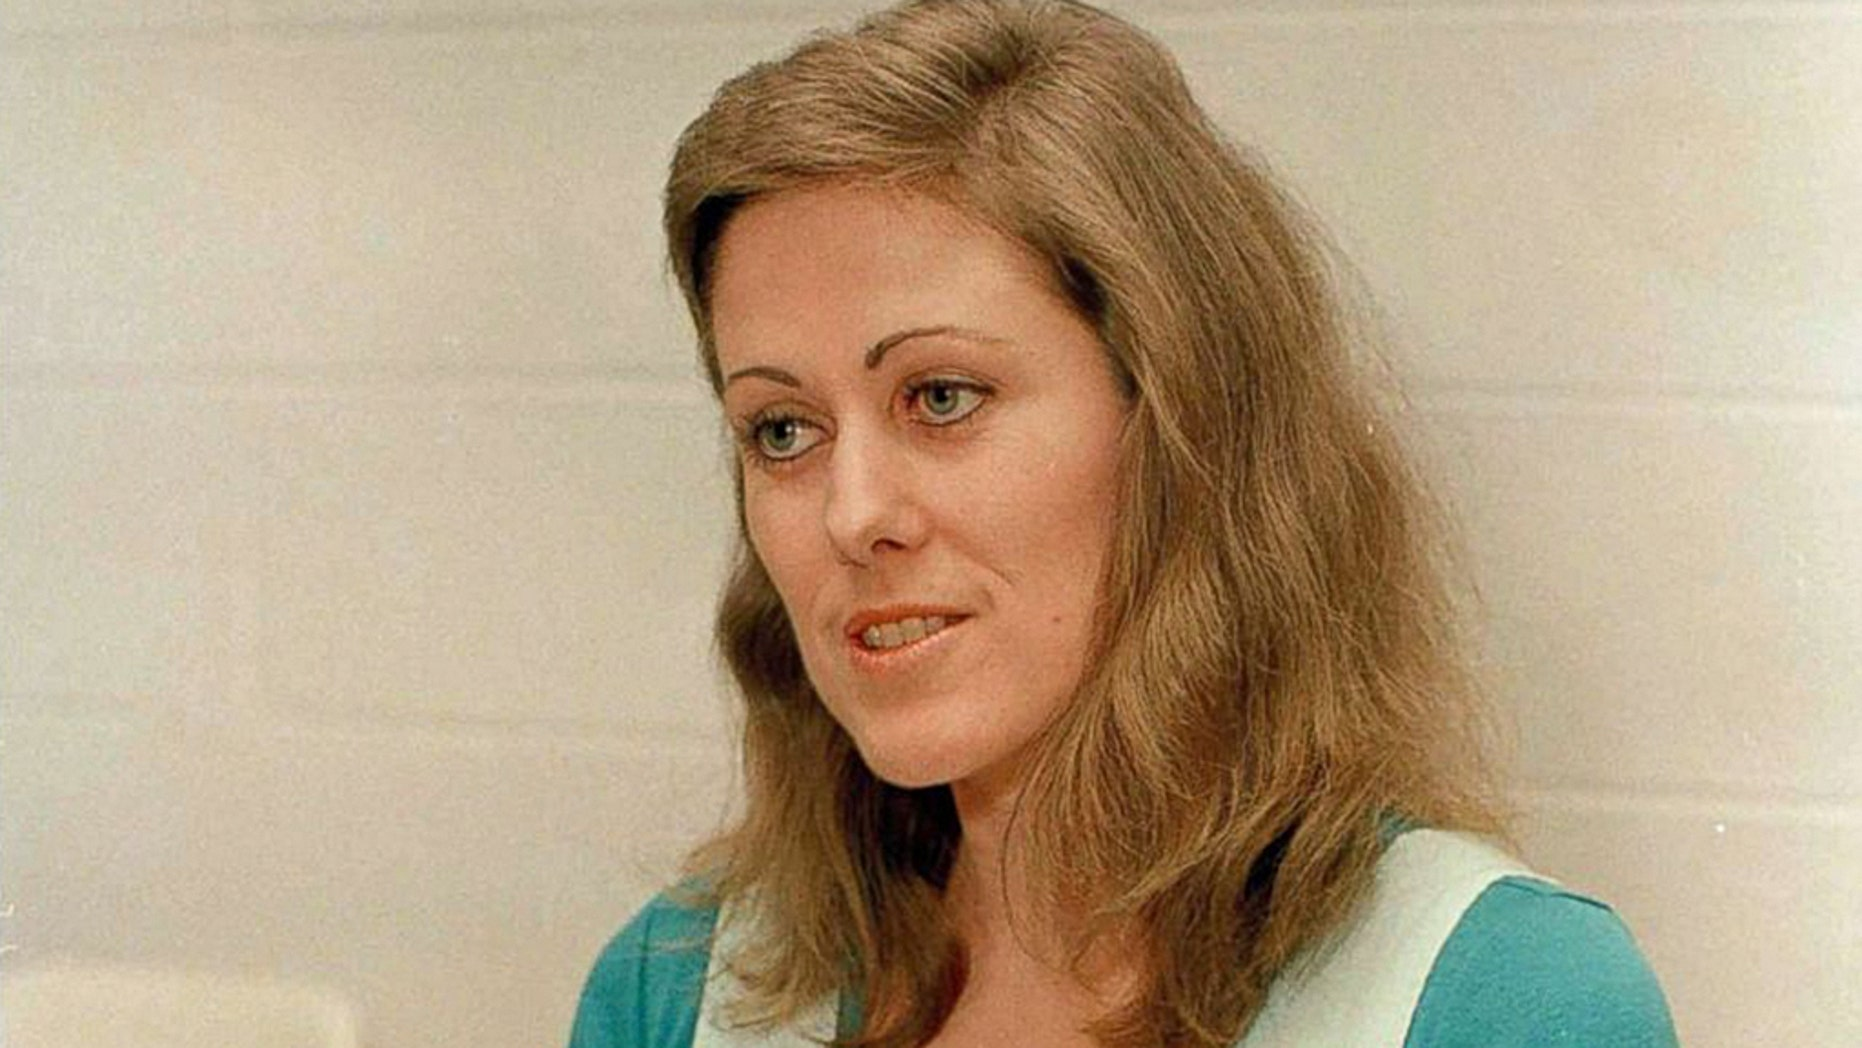 Diane Downs (seen here in 1989) escaped the Oregon Women's Correctional Center on July 11, 1987.